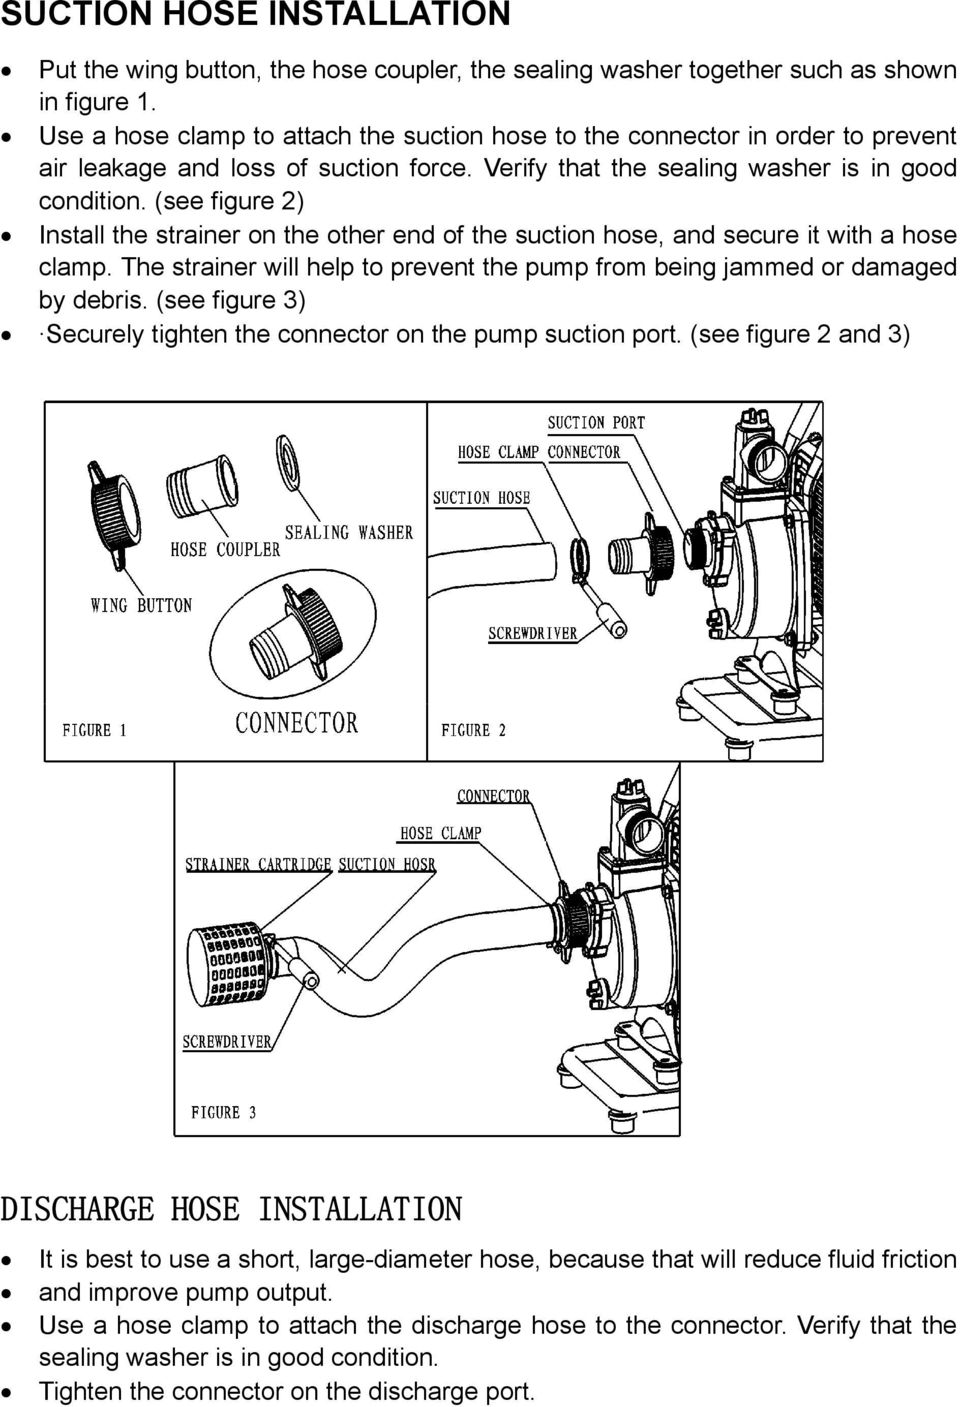 (see figure 2) Install the strainer on the other end of the suction hose, and secure it with a hose clamp. The strainer will help to prevent the pump from being jammed or damaged by debris.